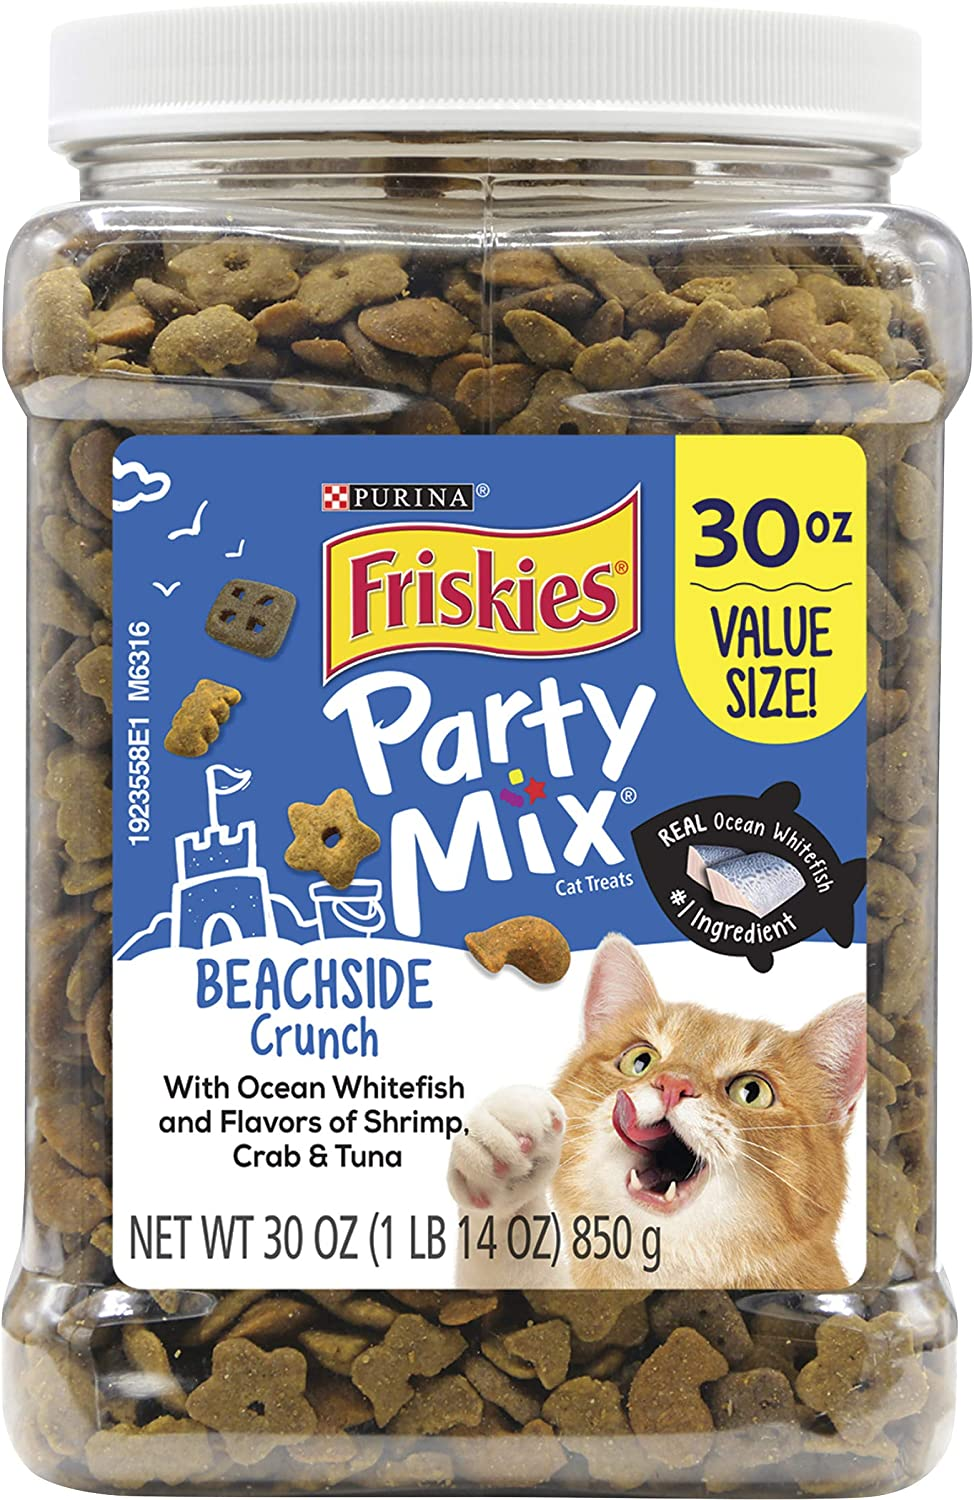 Friskies Party Mix Adult Cat Treats Canisters – Real Ocean Whitefish #1 Ingredient